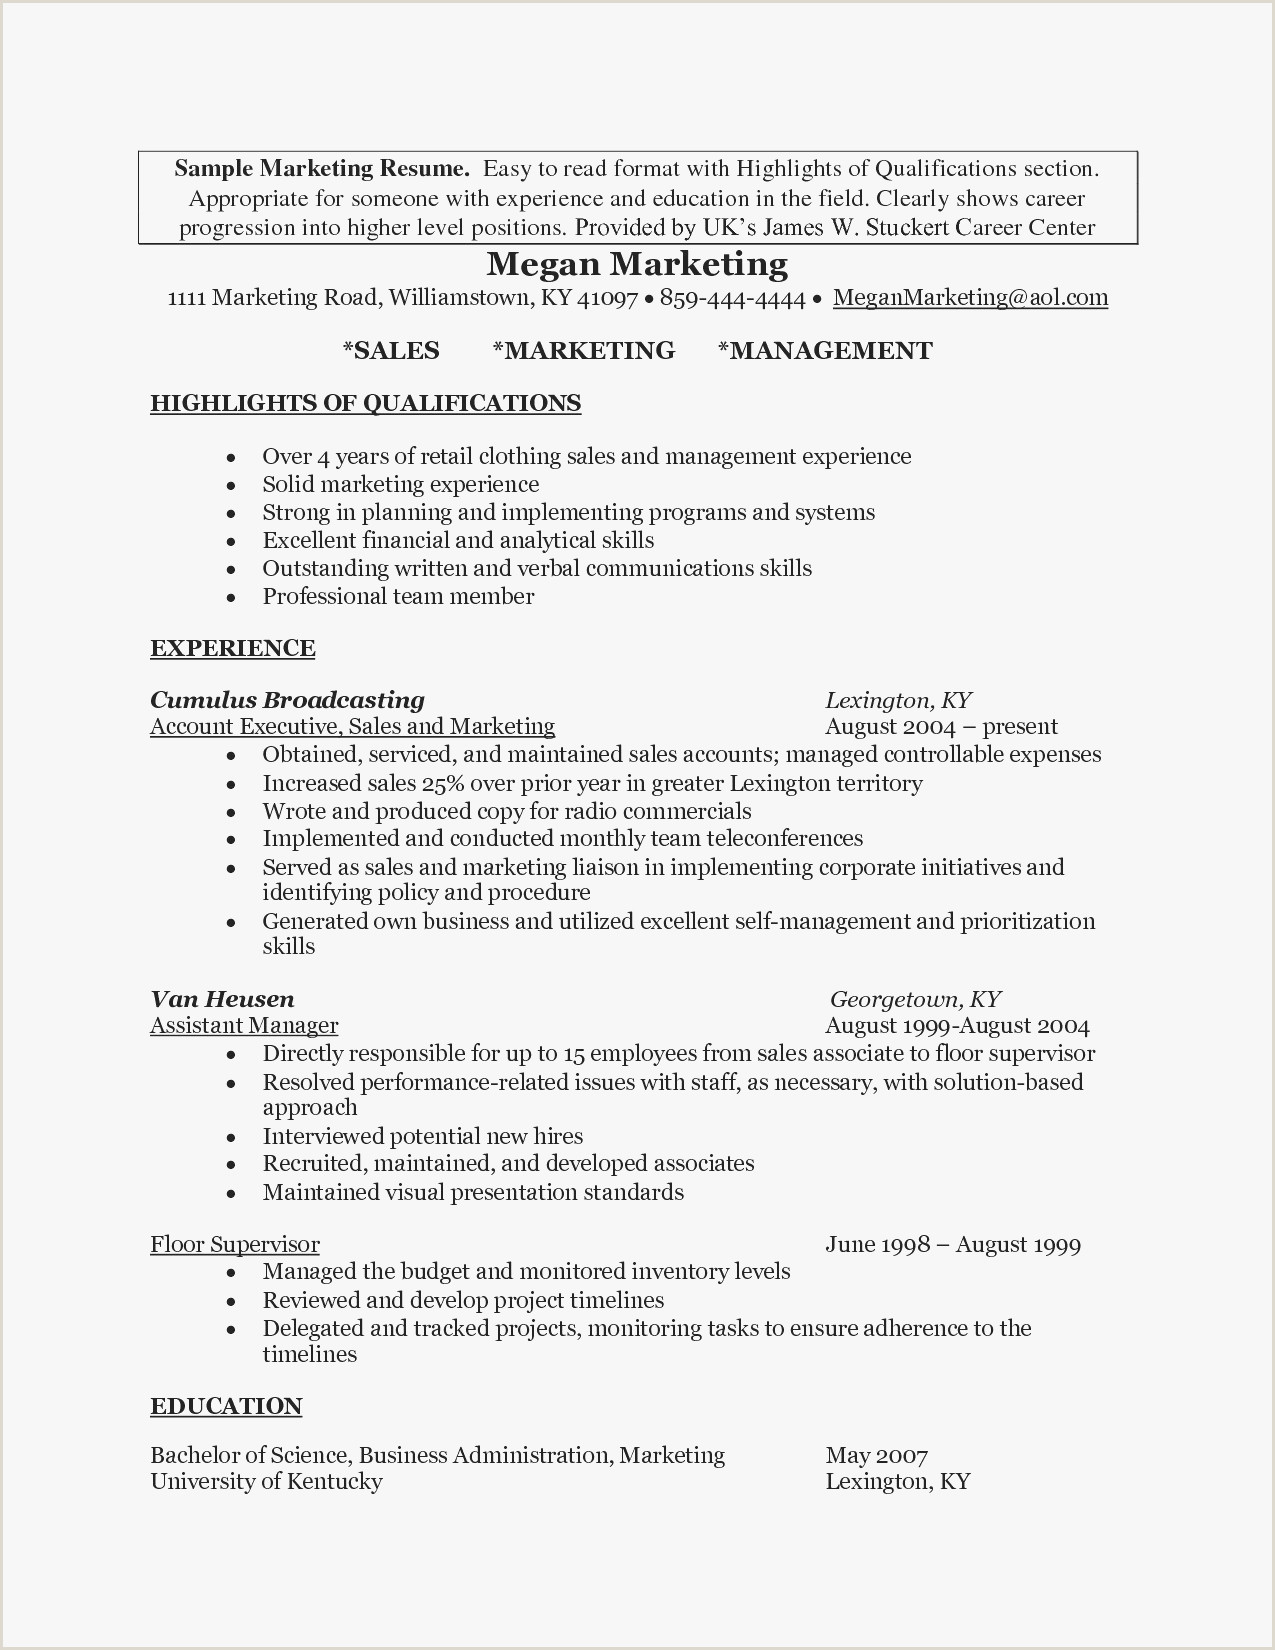 Resume Sample For A Sales And Marketing Executive New Hr